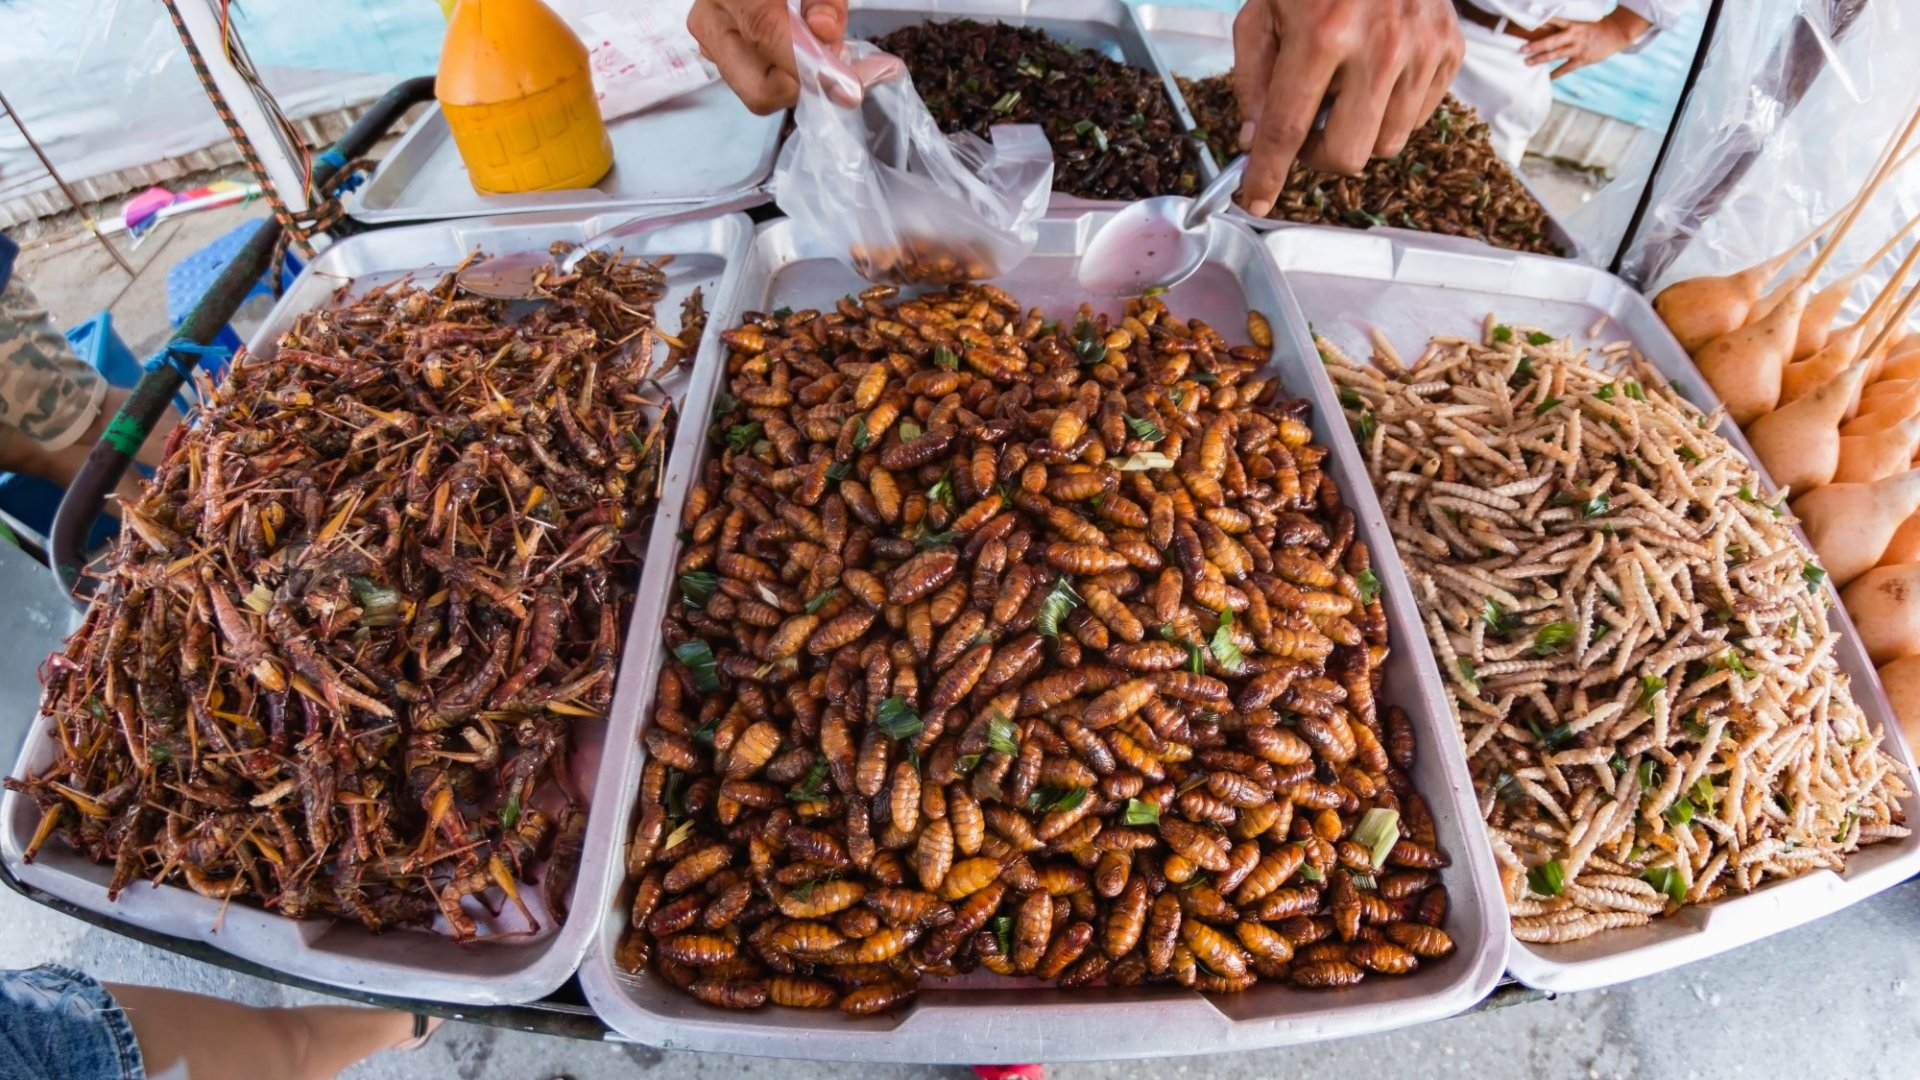 One Way to Make the Planet More Sustainable? Eat Bugs (Crickets, Specifically)